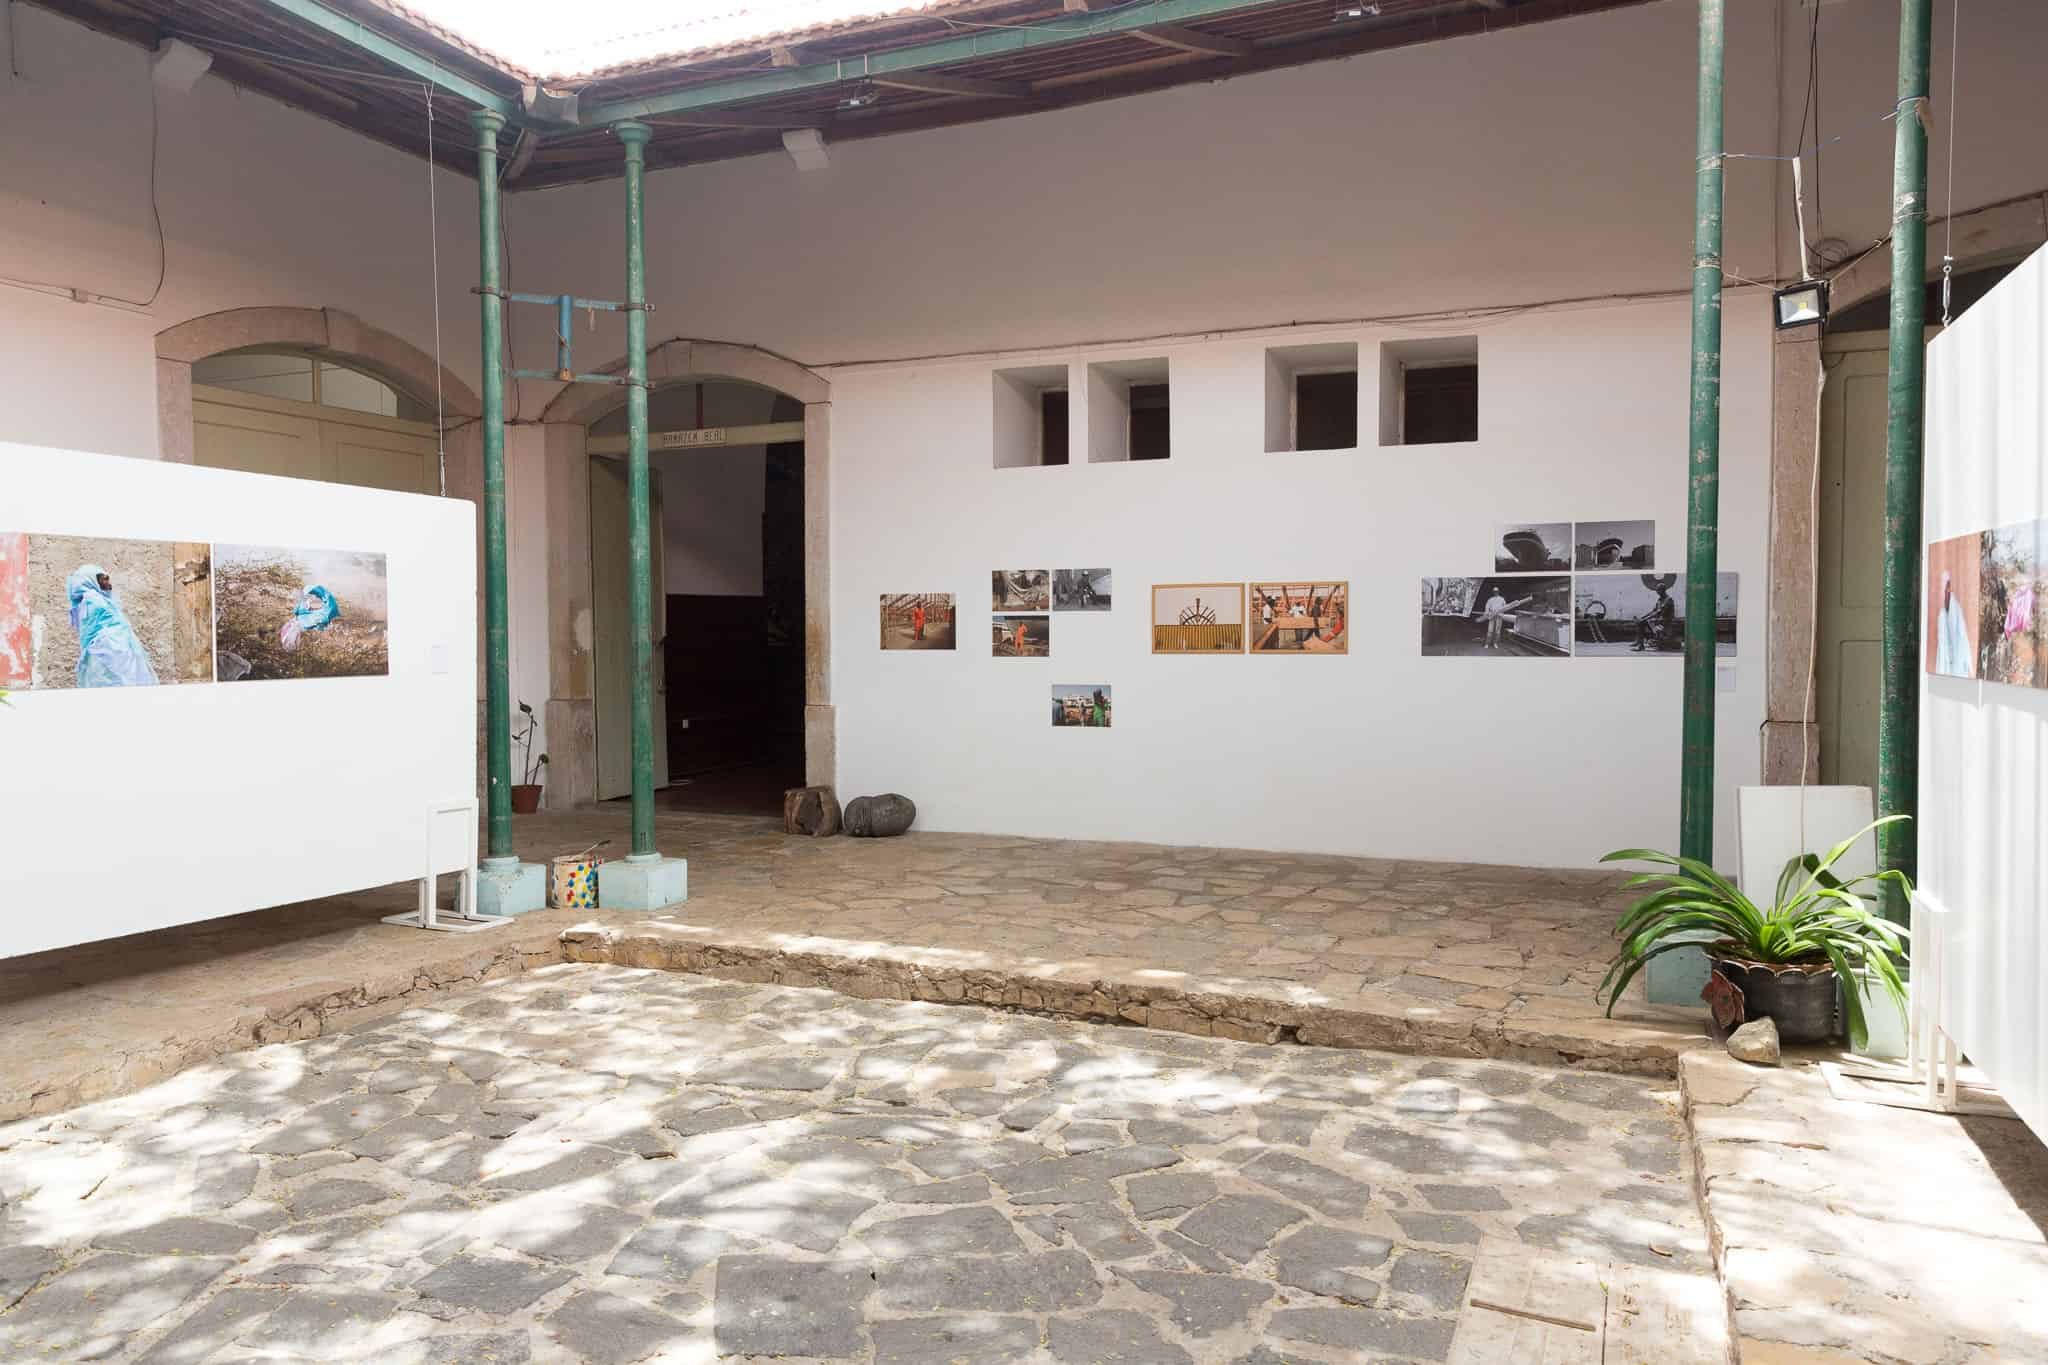 Partial view of the Catchupa Factory 2019 exhibition (curated by John Fleetwood); the work of Emídio Jozine (Moz) in the back and David Aguacheiro (Moz) on the sides